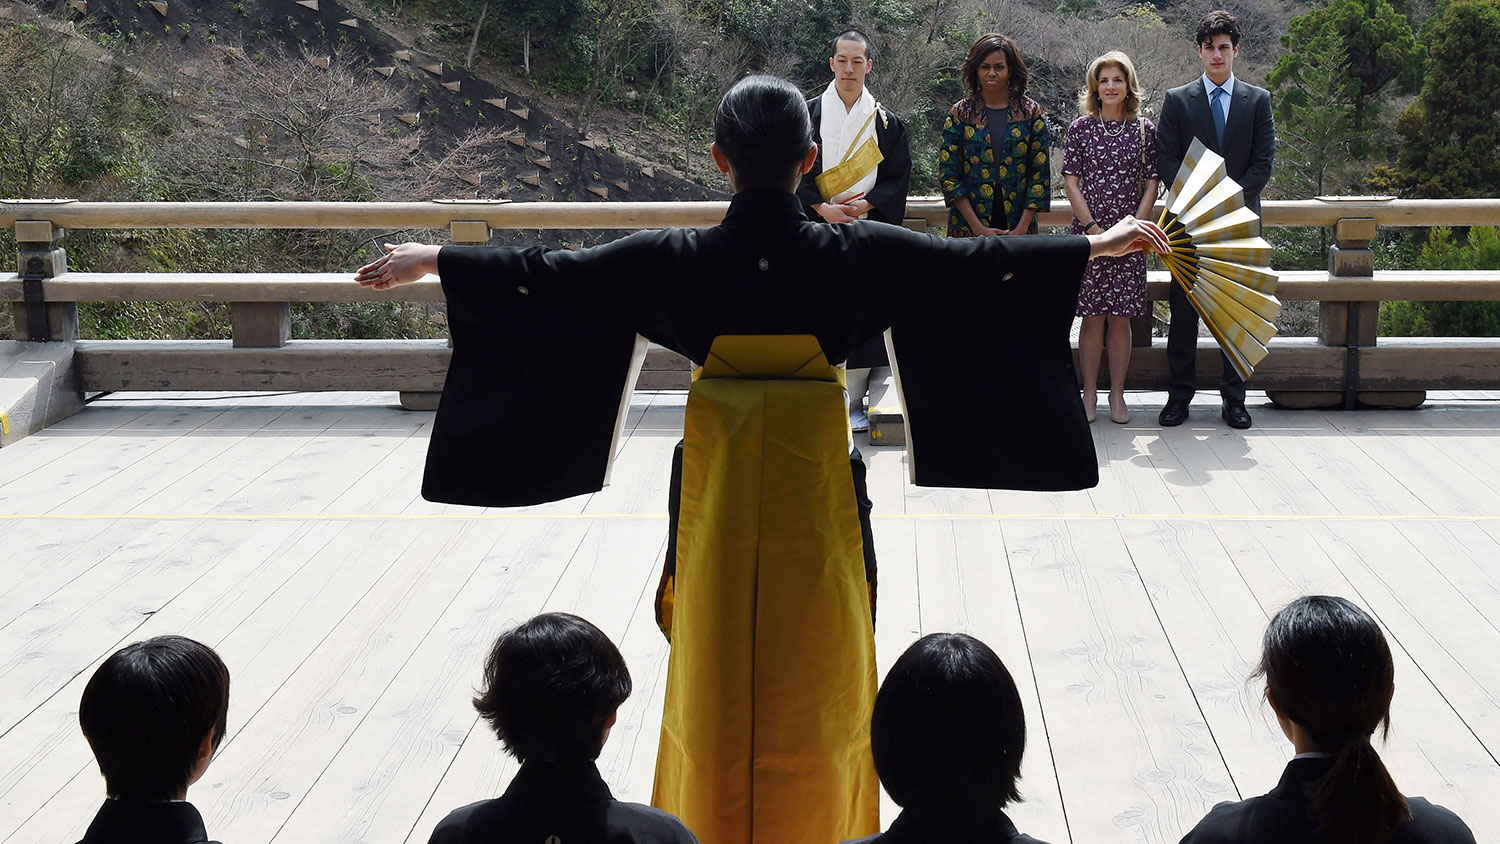 Obama, Kennedy attend a play in Kyoto